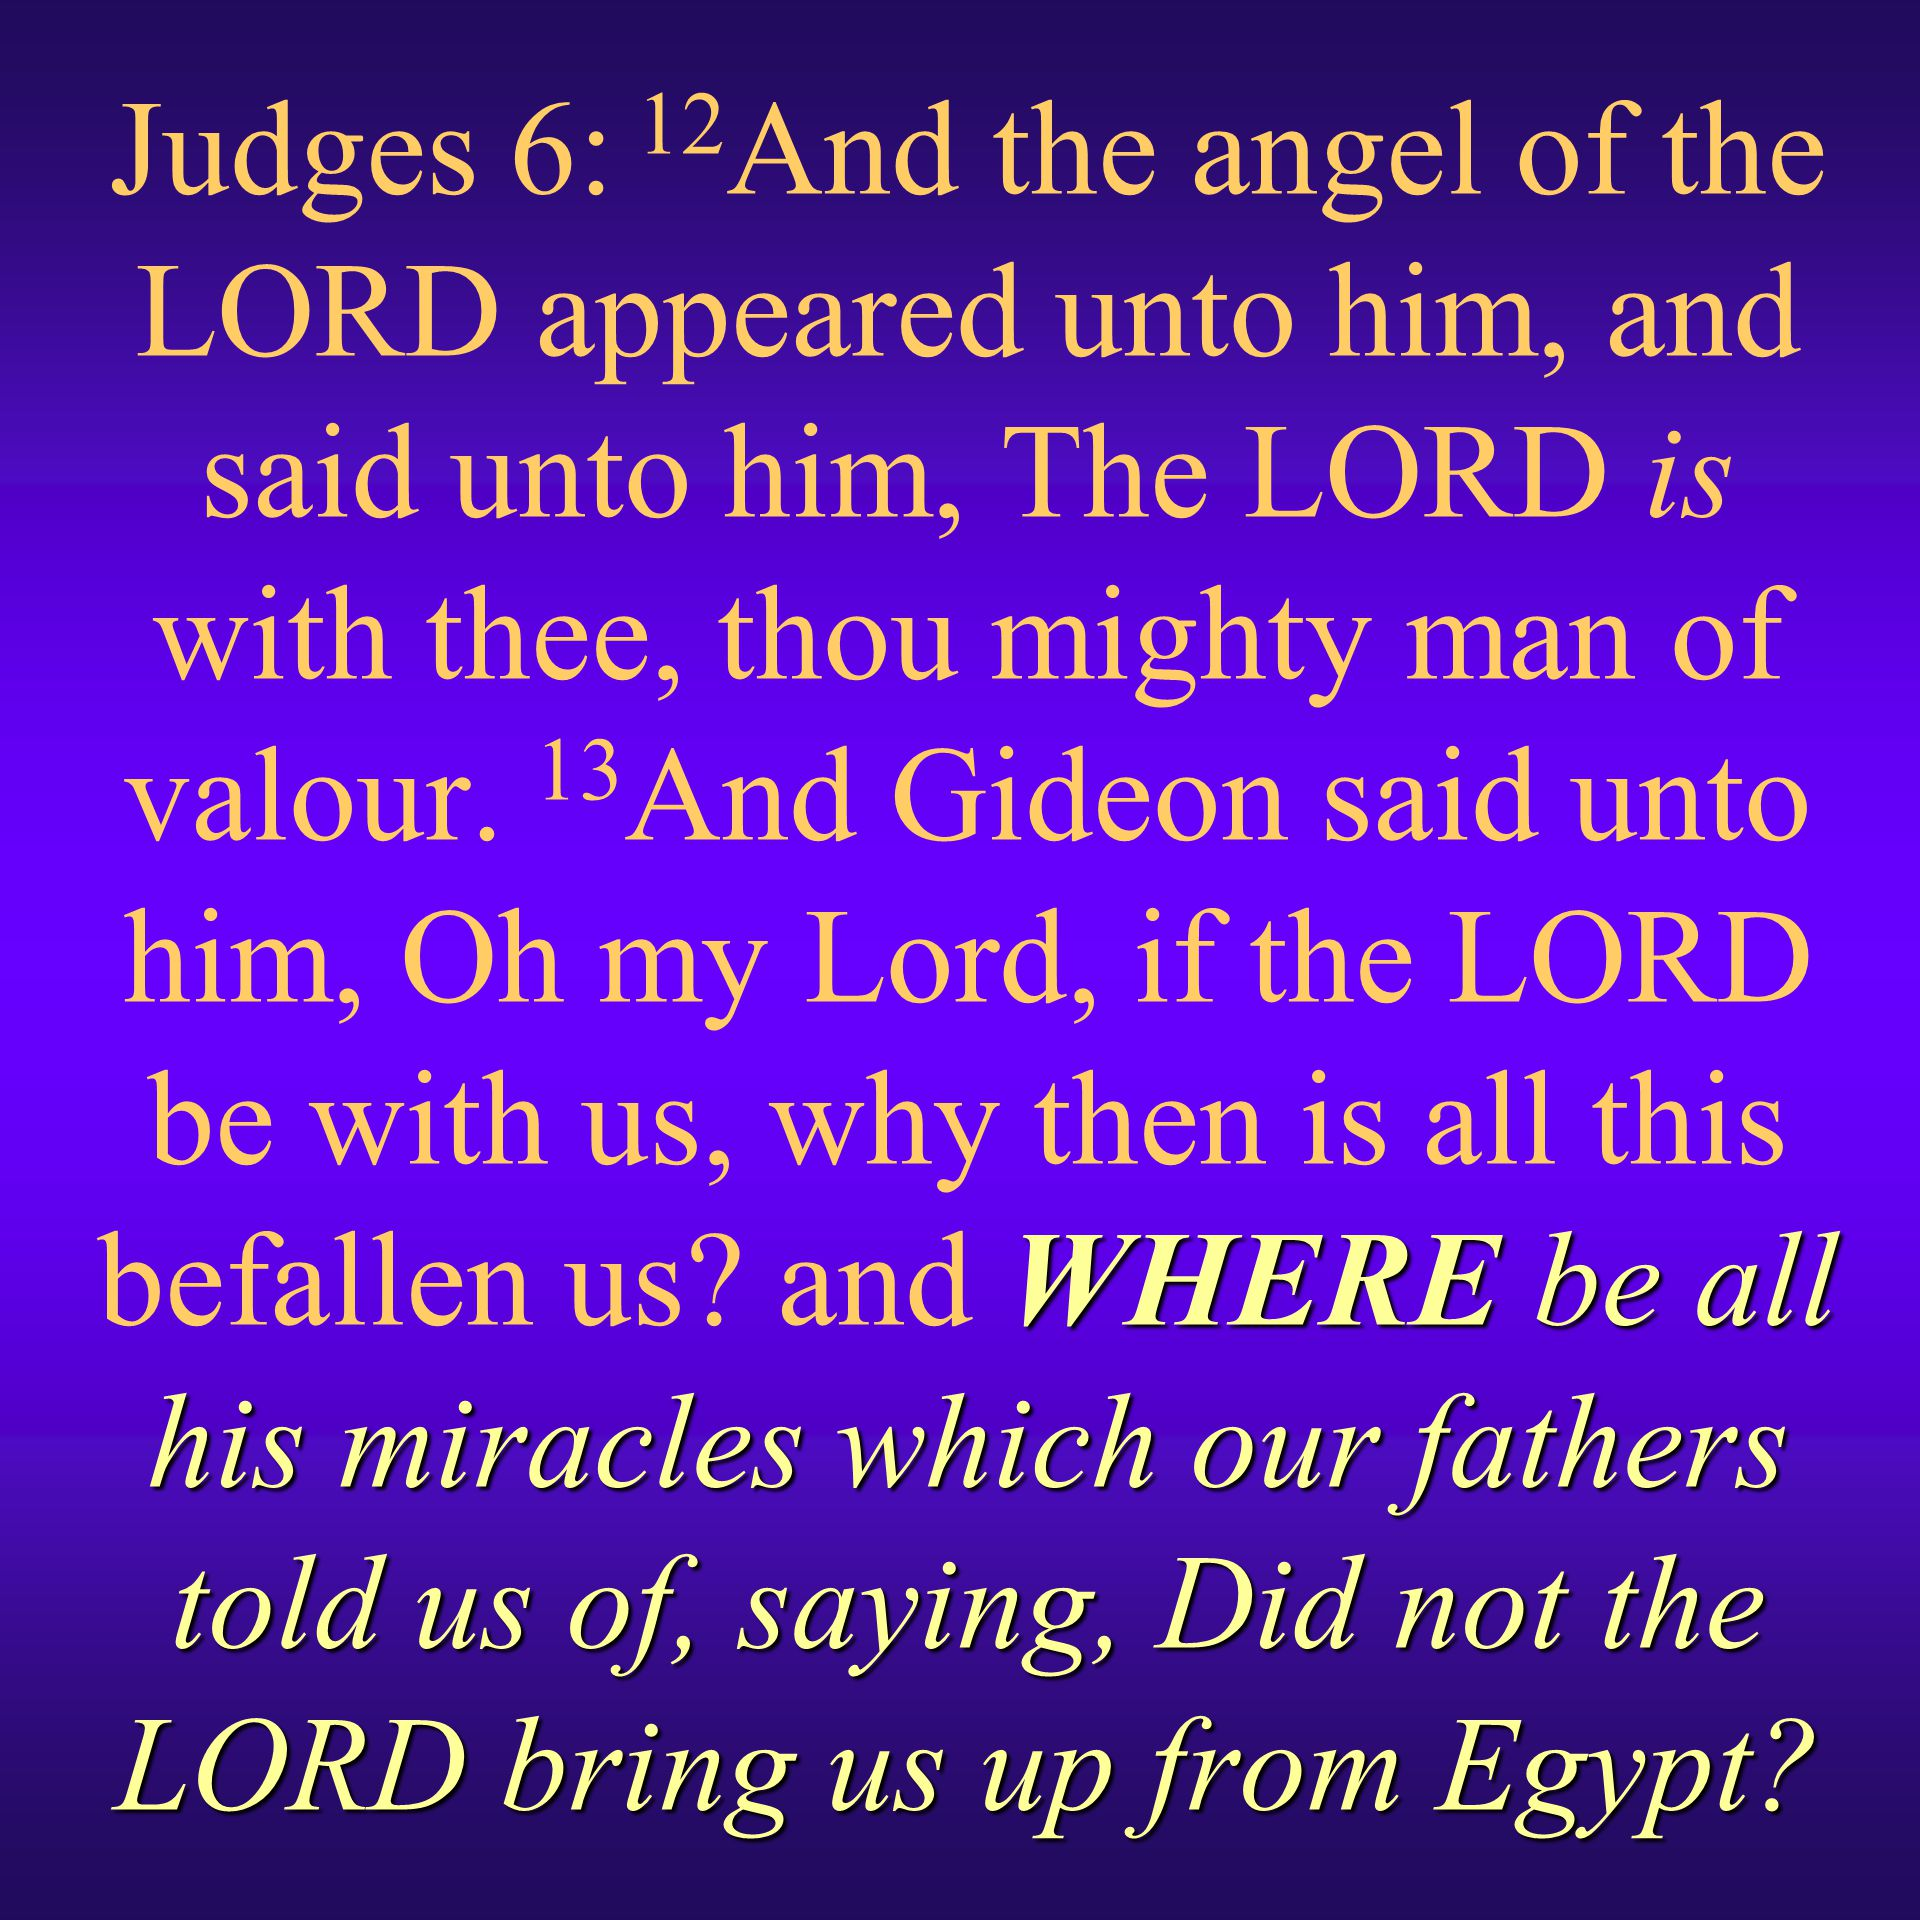 Judges 6: 12And the angel of the LORD appeared unto him, and said unto him, The LORD is with thee, thou mighty man of valour.